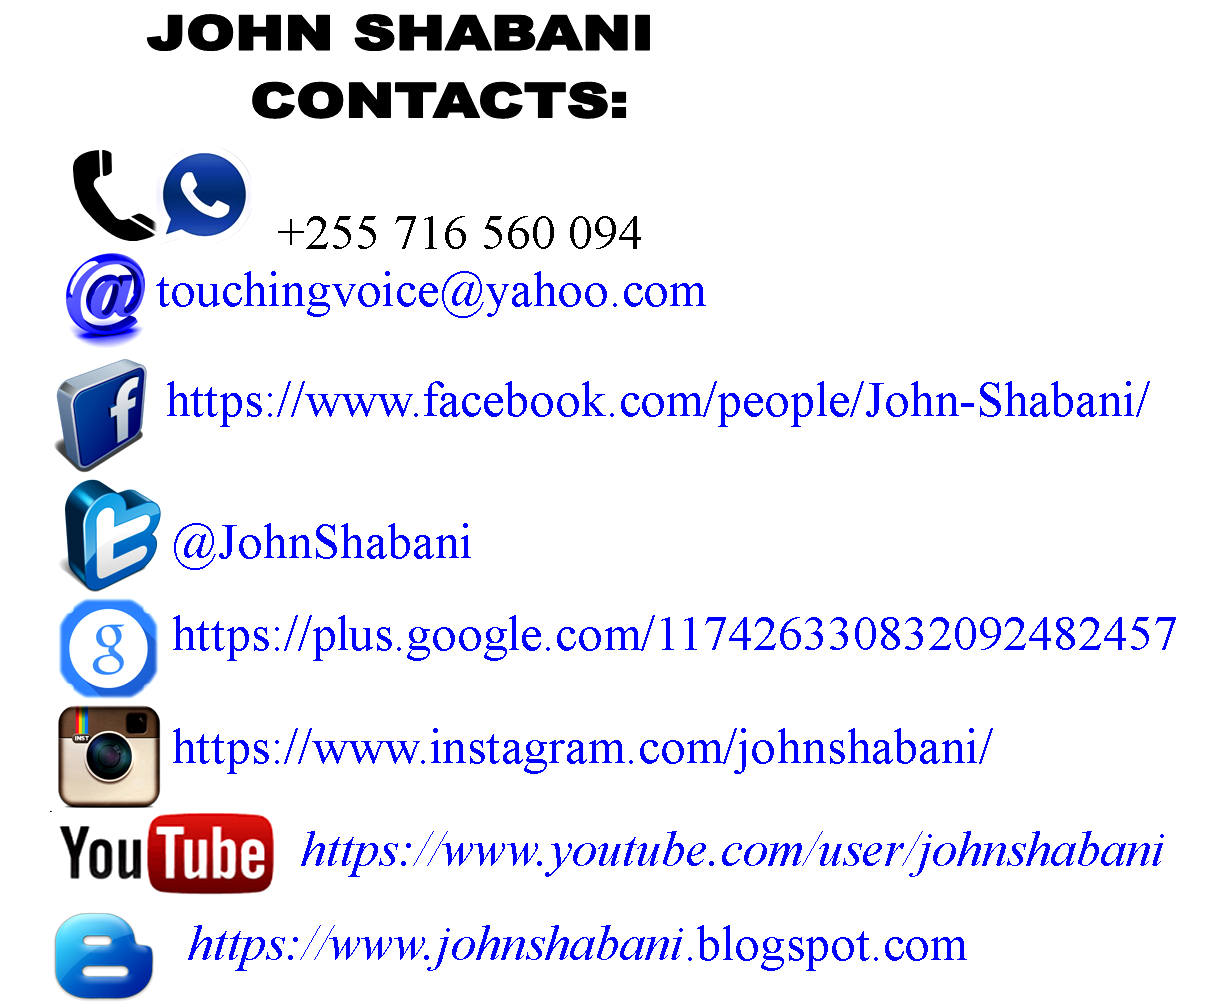 MEET WITH JOHN SHABANI